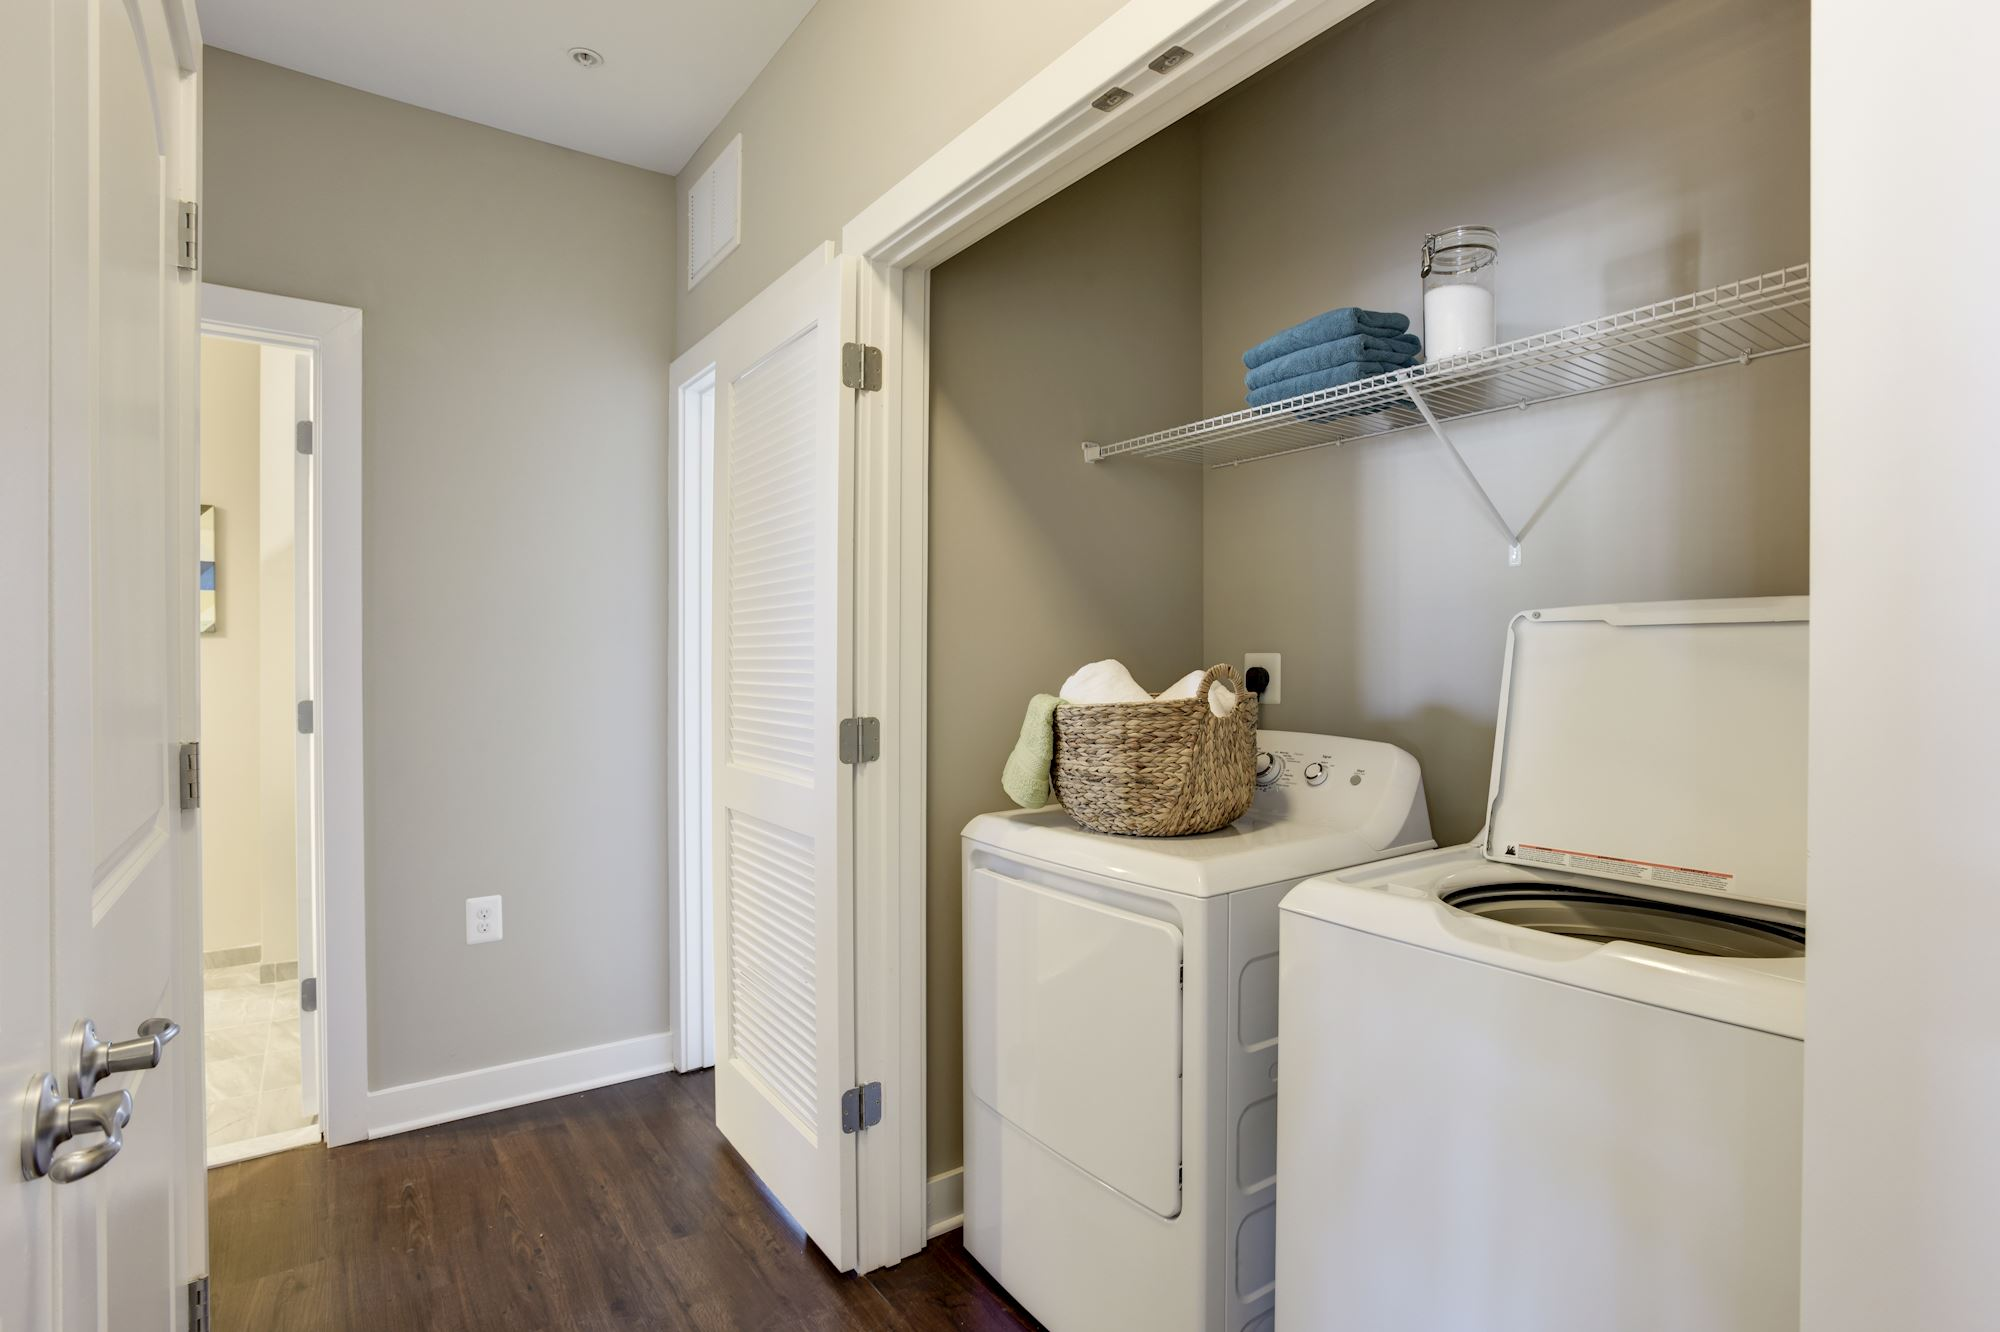 Avanti Luxury Apartments in Bel Air, MD - In-Home Laundry